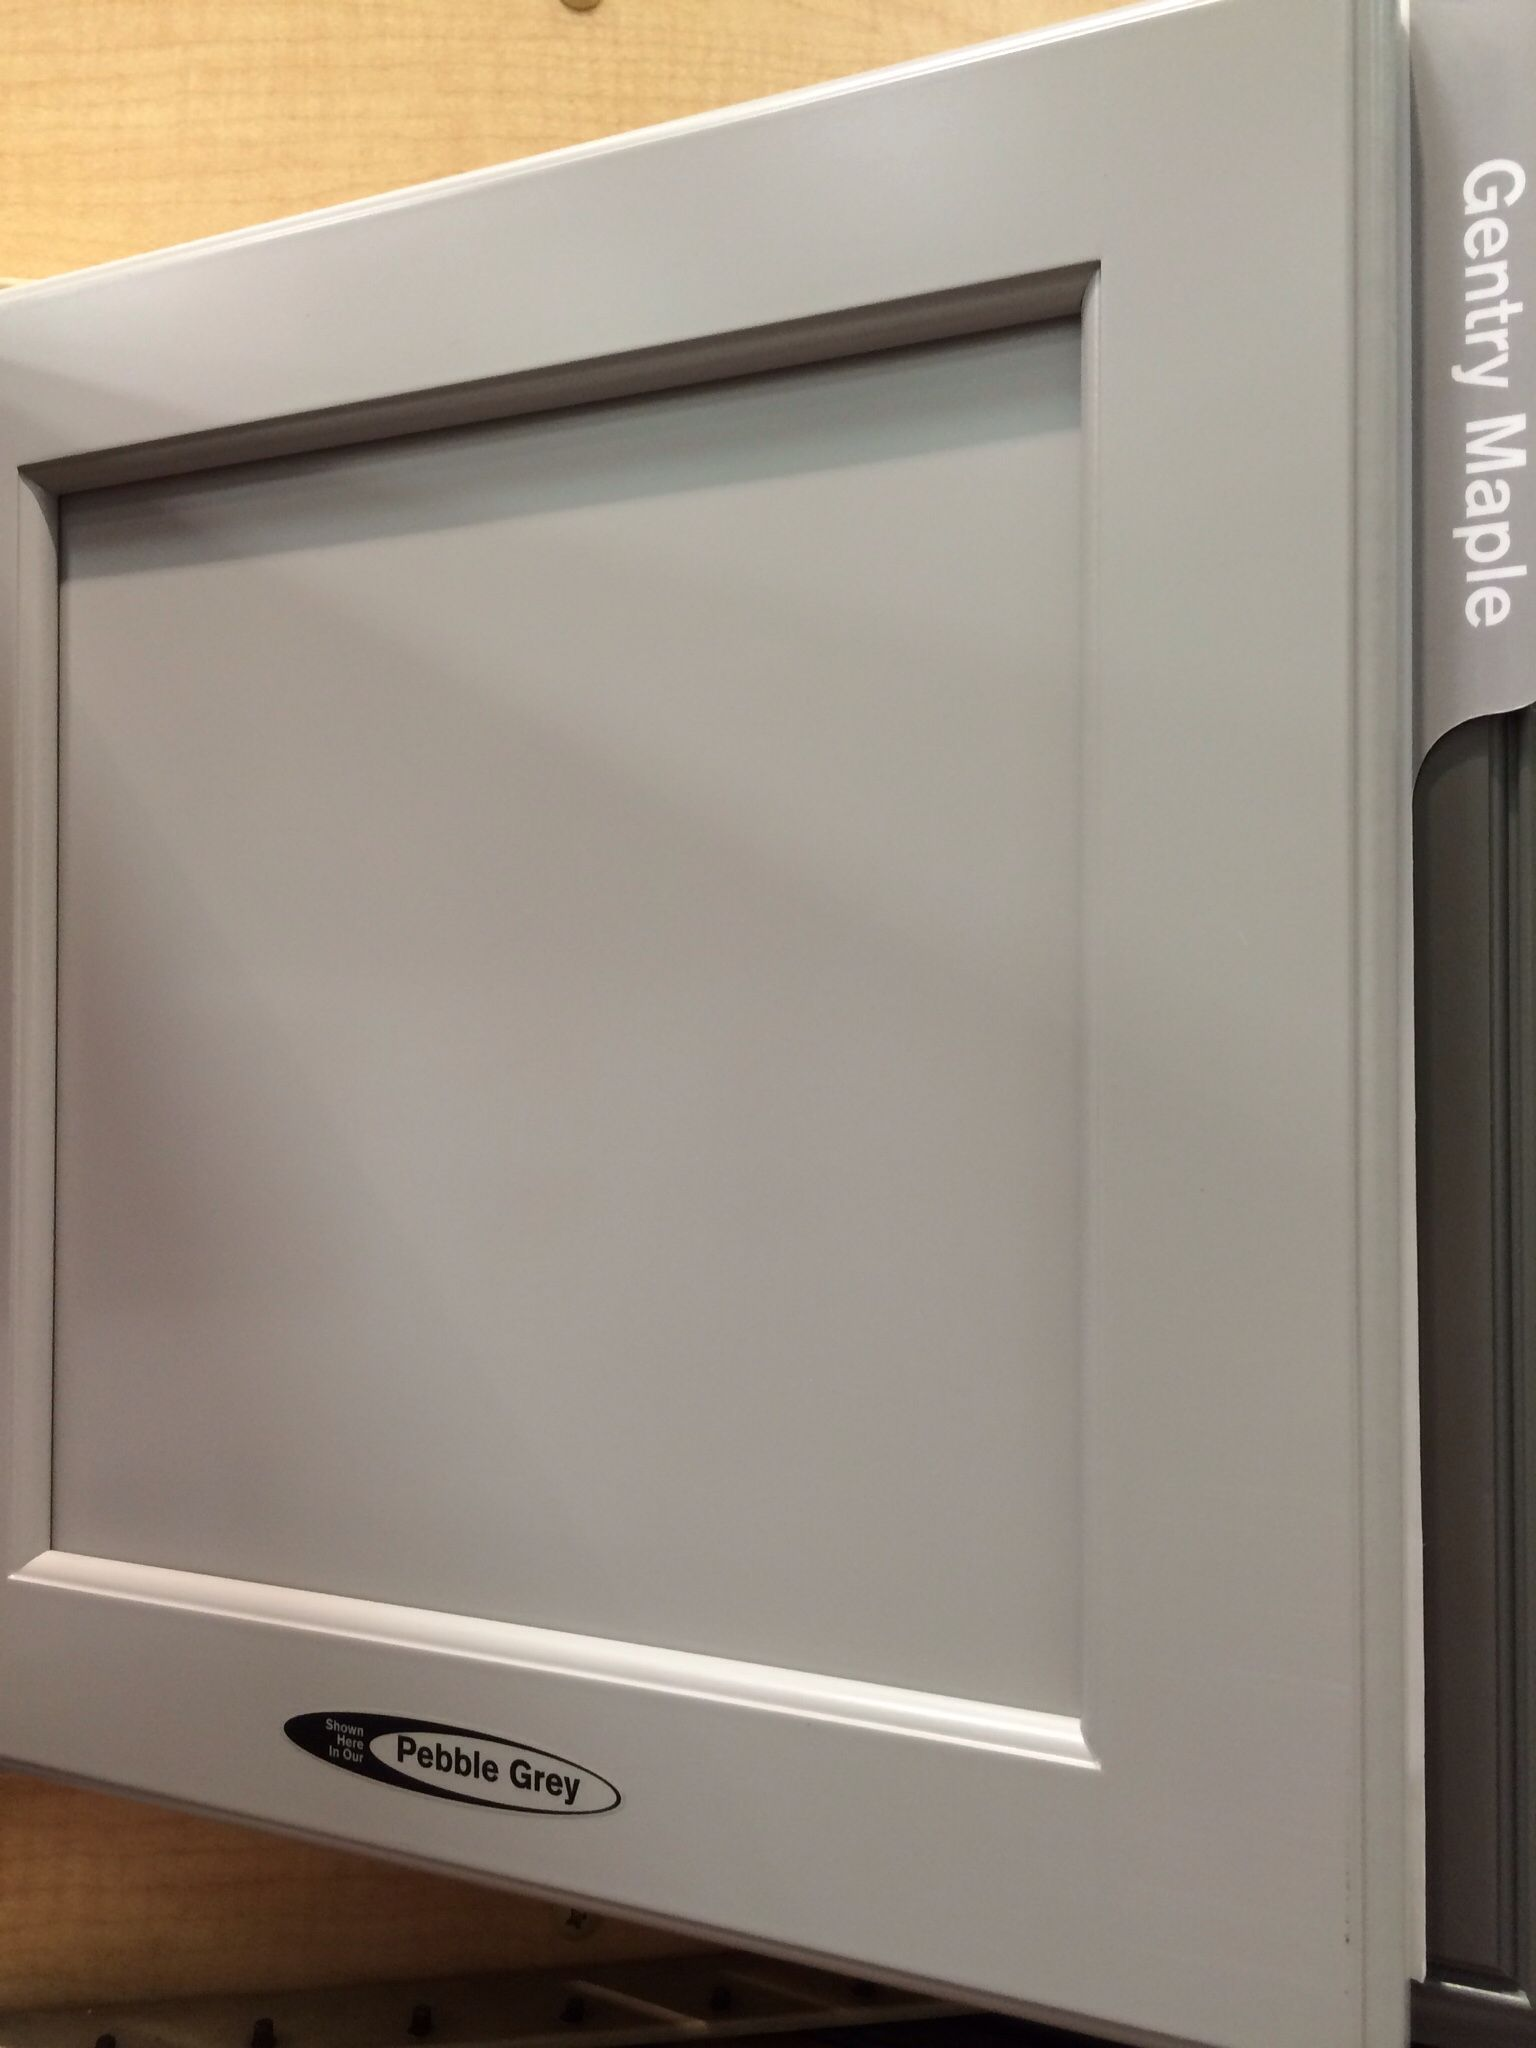 Best Kraftmaid Pebble Grey Cabinets This Was Lighter Color 400 x 300